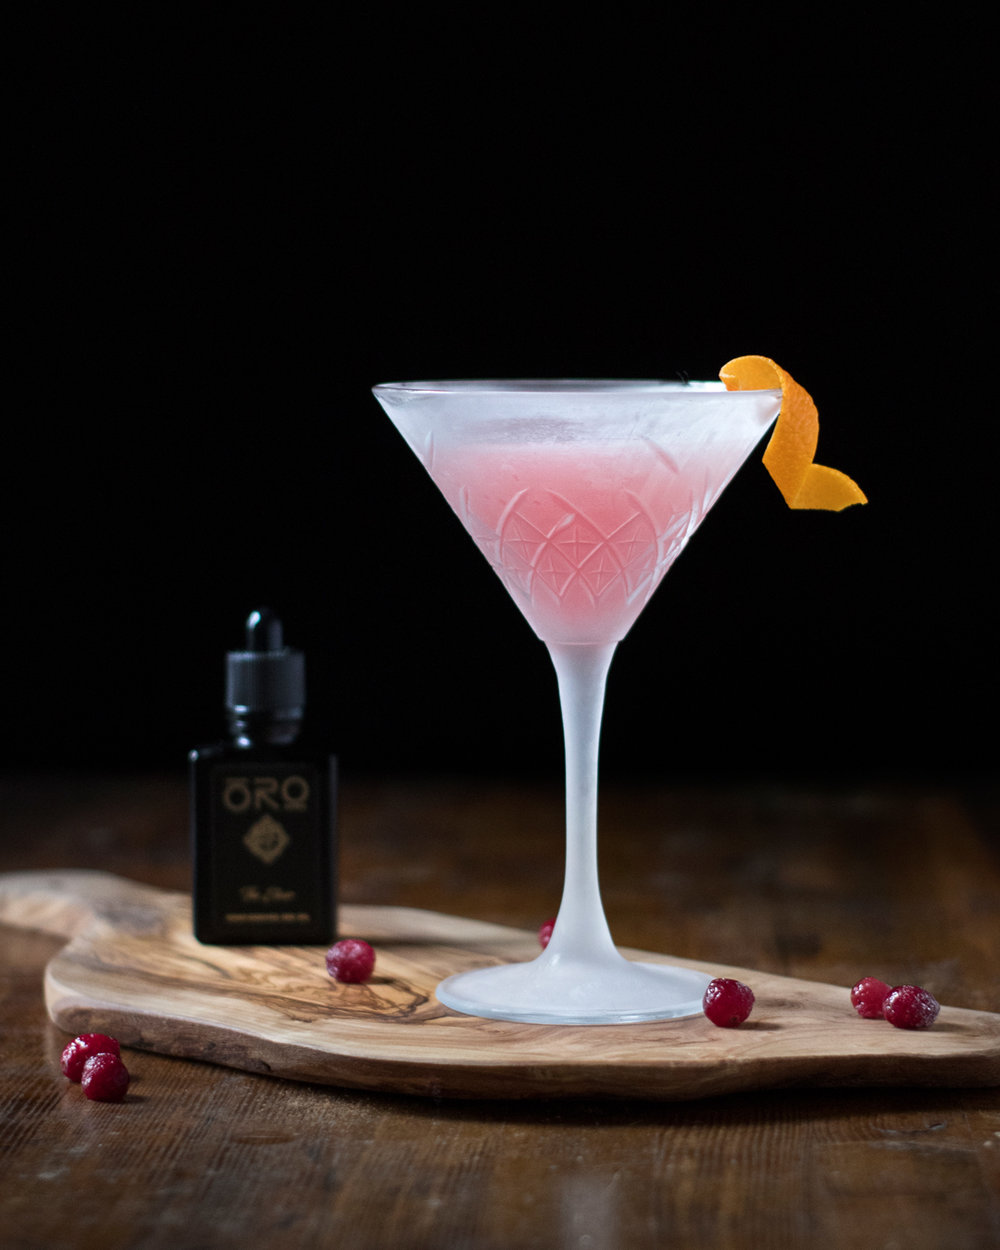 Cosmopolita Cocktail with Oroganics The Elixir CBD Oil for Cocktails